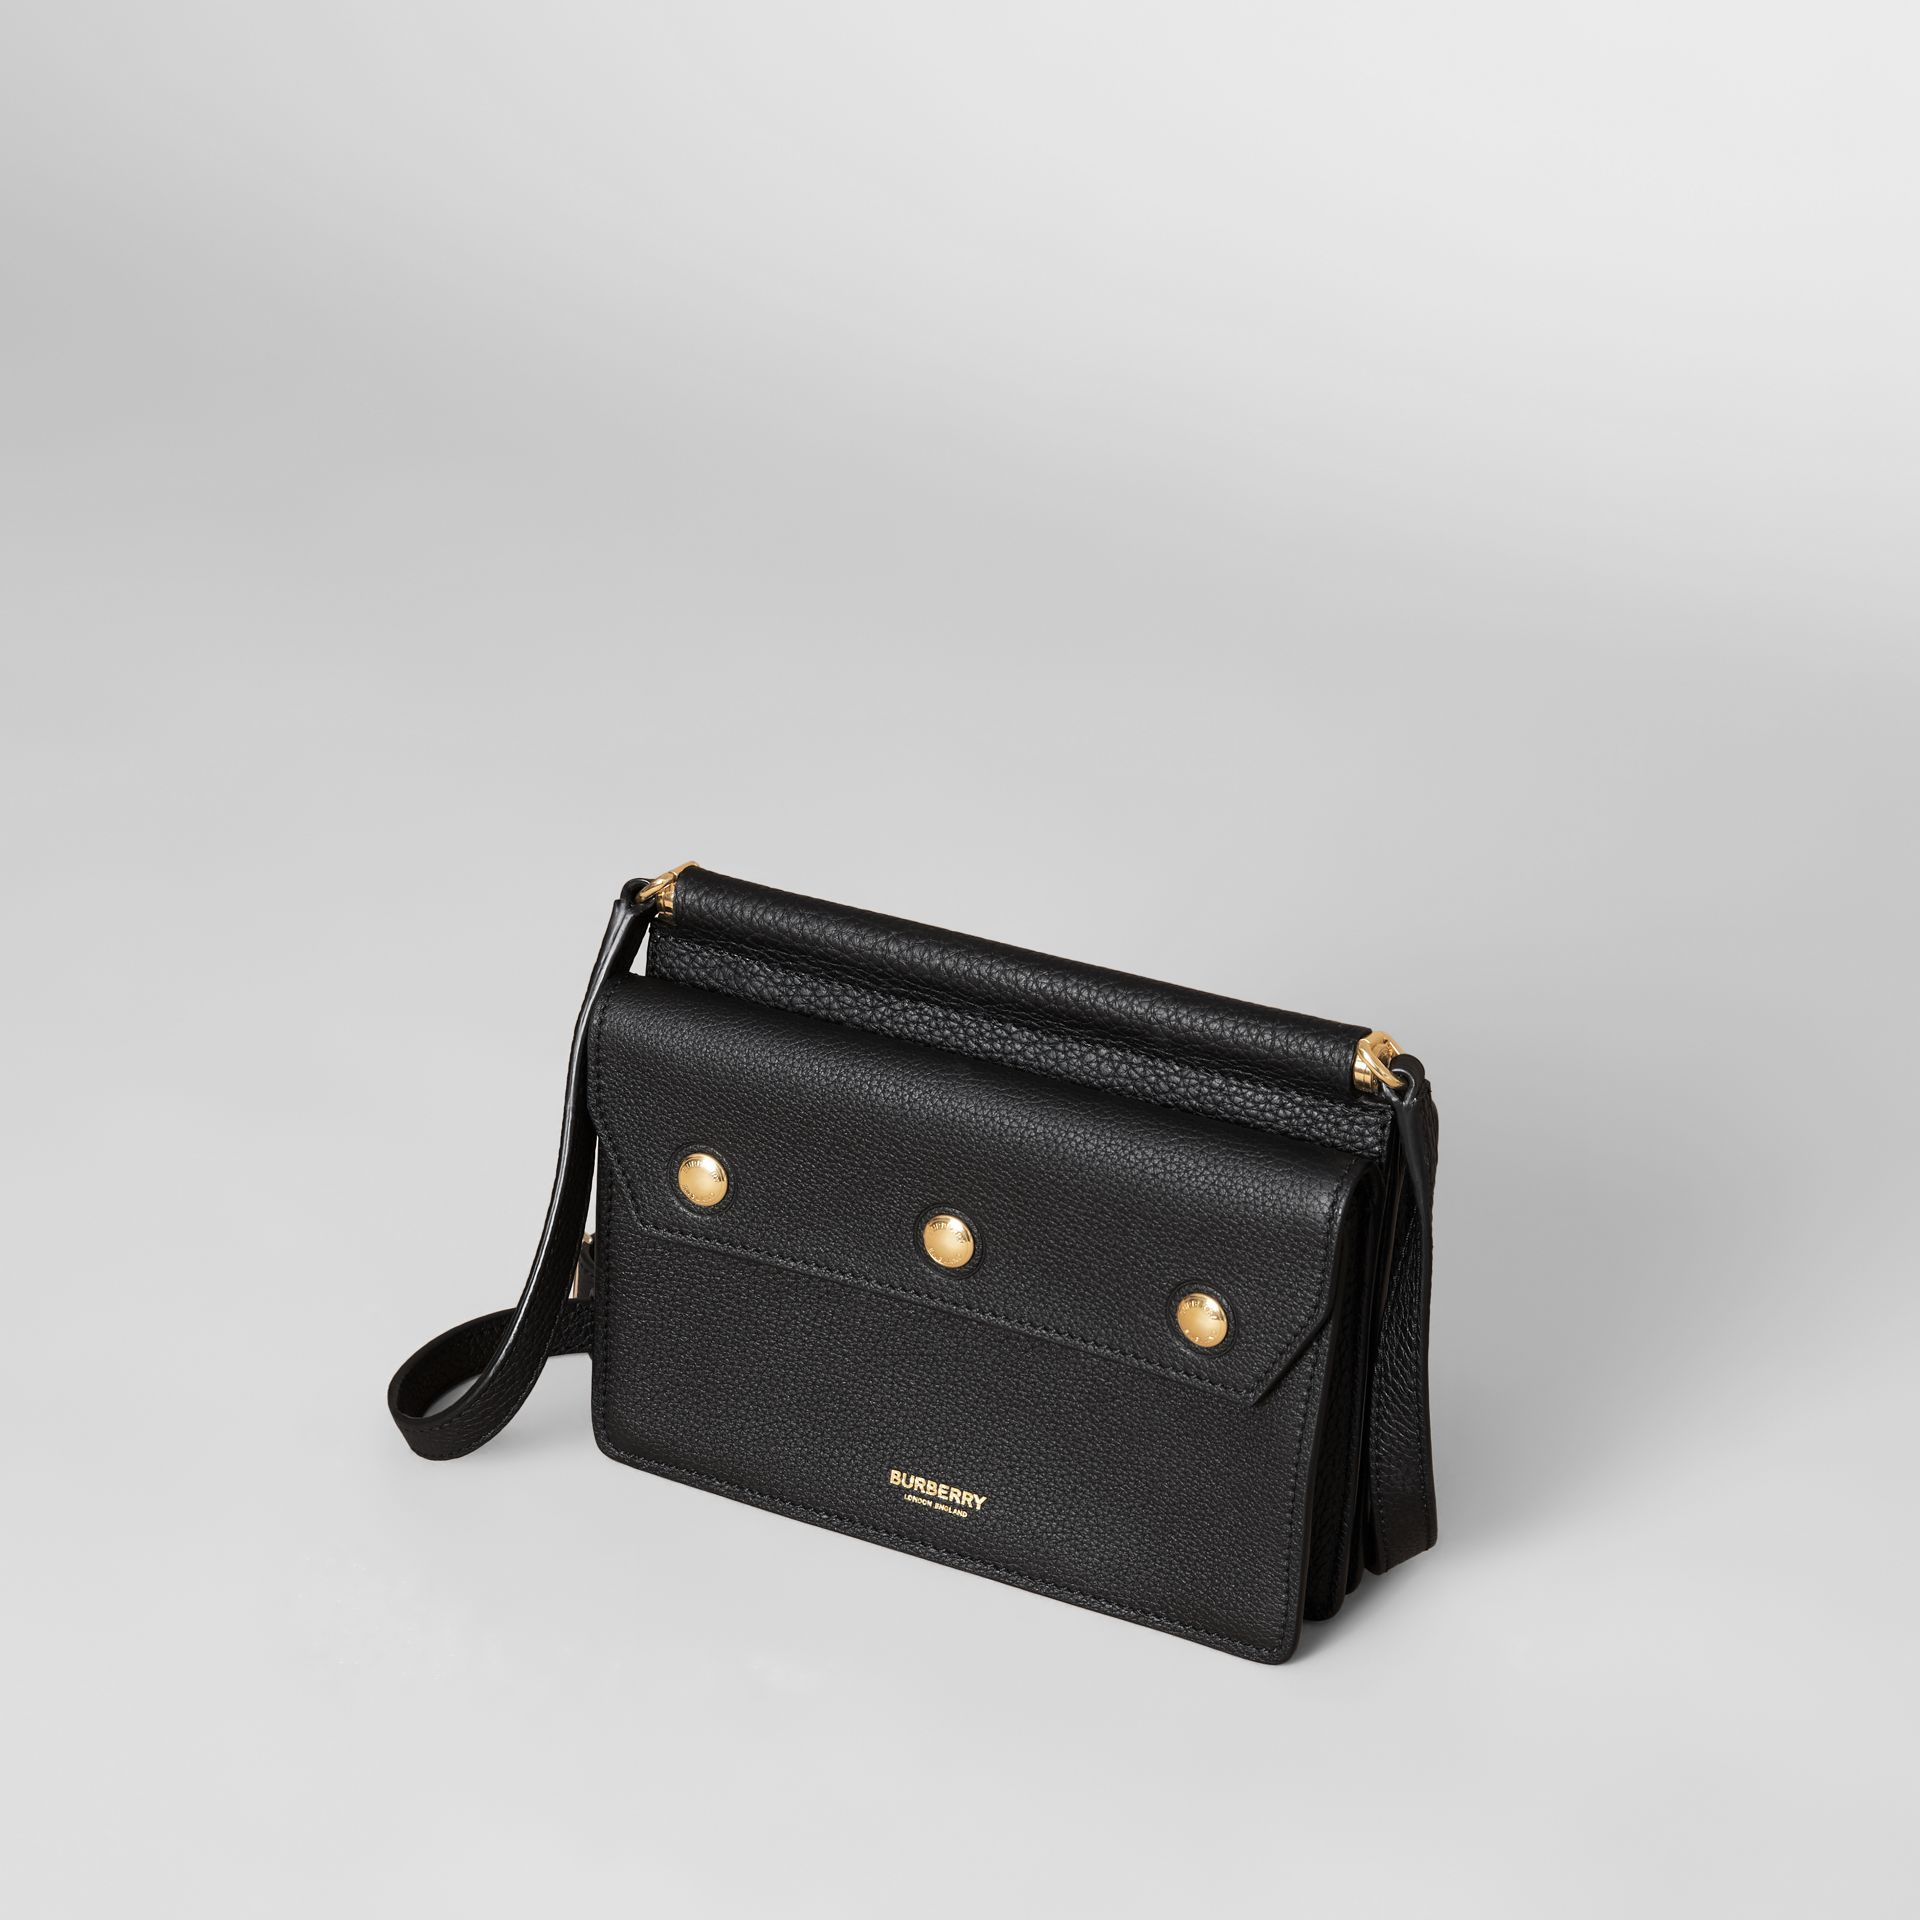 Mini Leather Title Bag in Black - Women | Burberry Hong Kong S.A.R. - gallery image 3